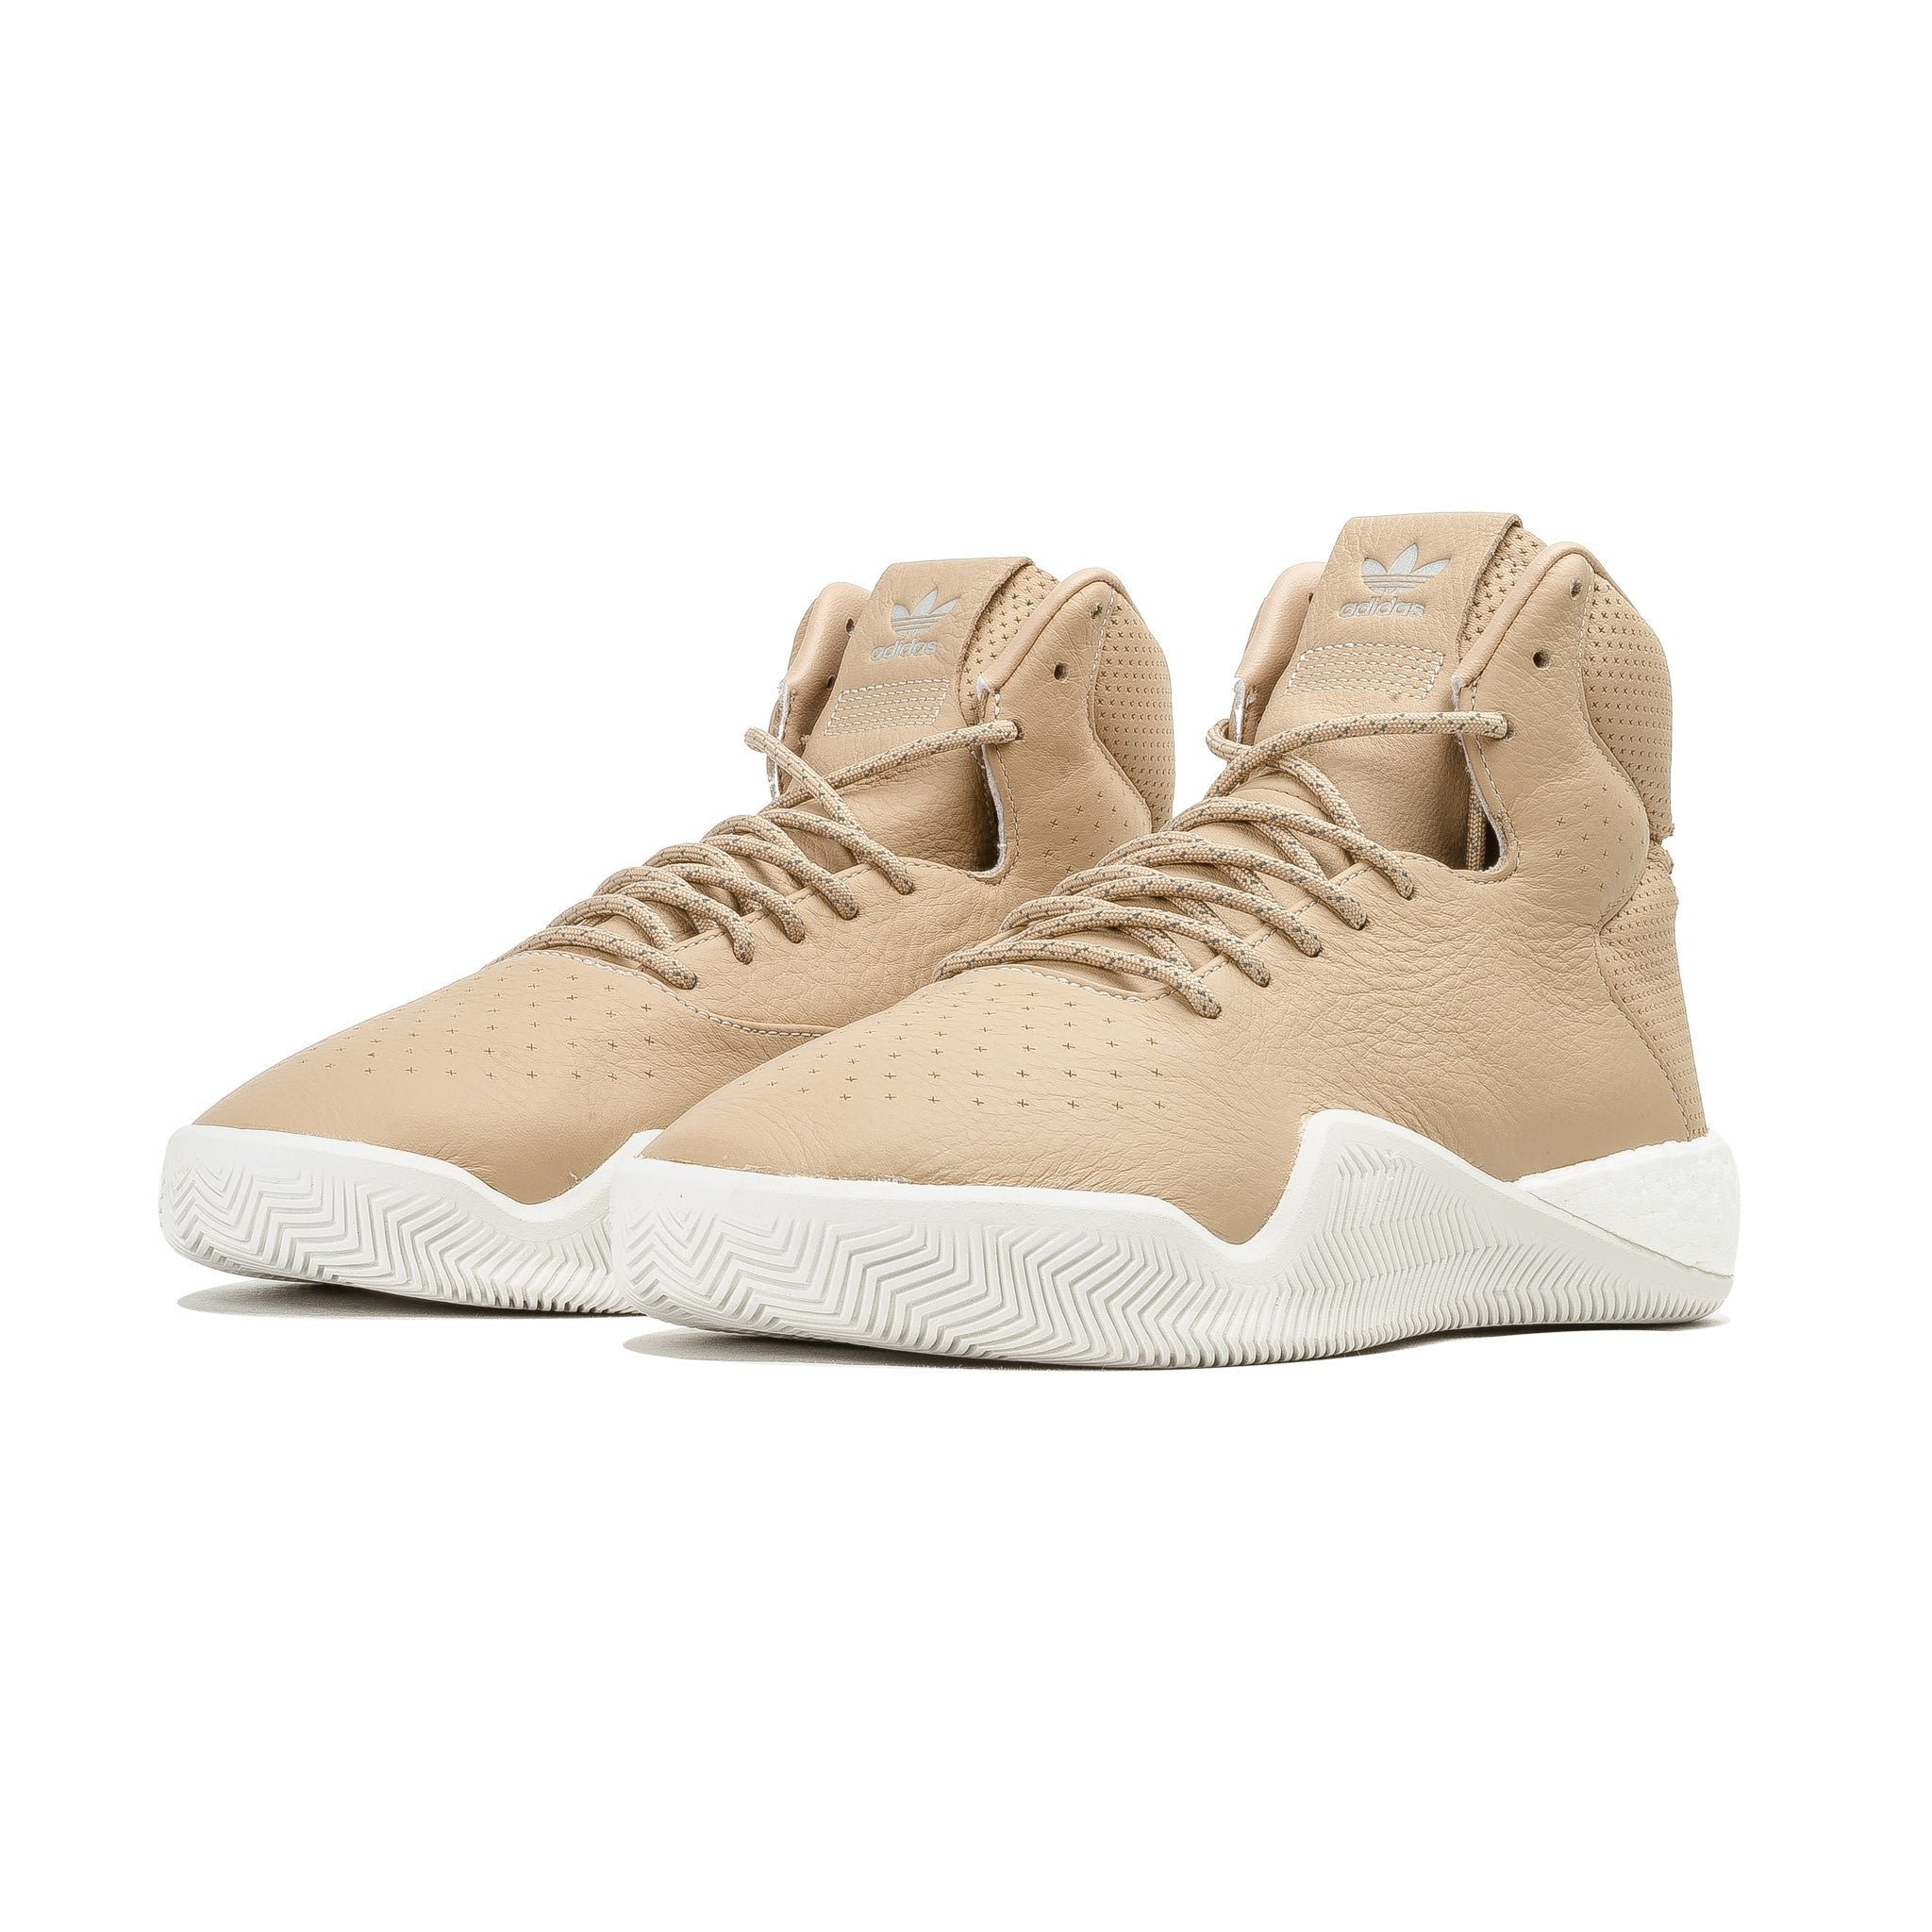 Tubular Instinct Boost BB8400 Tan